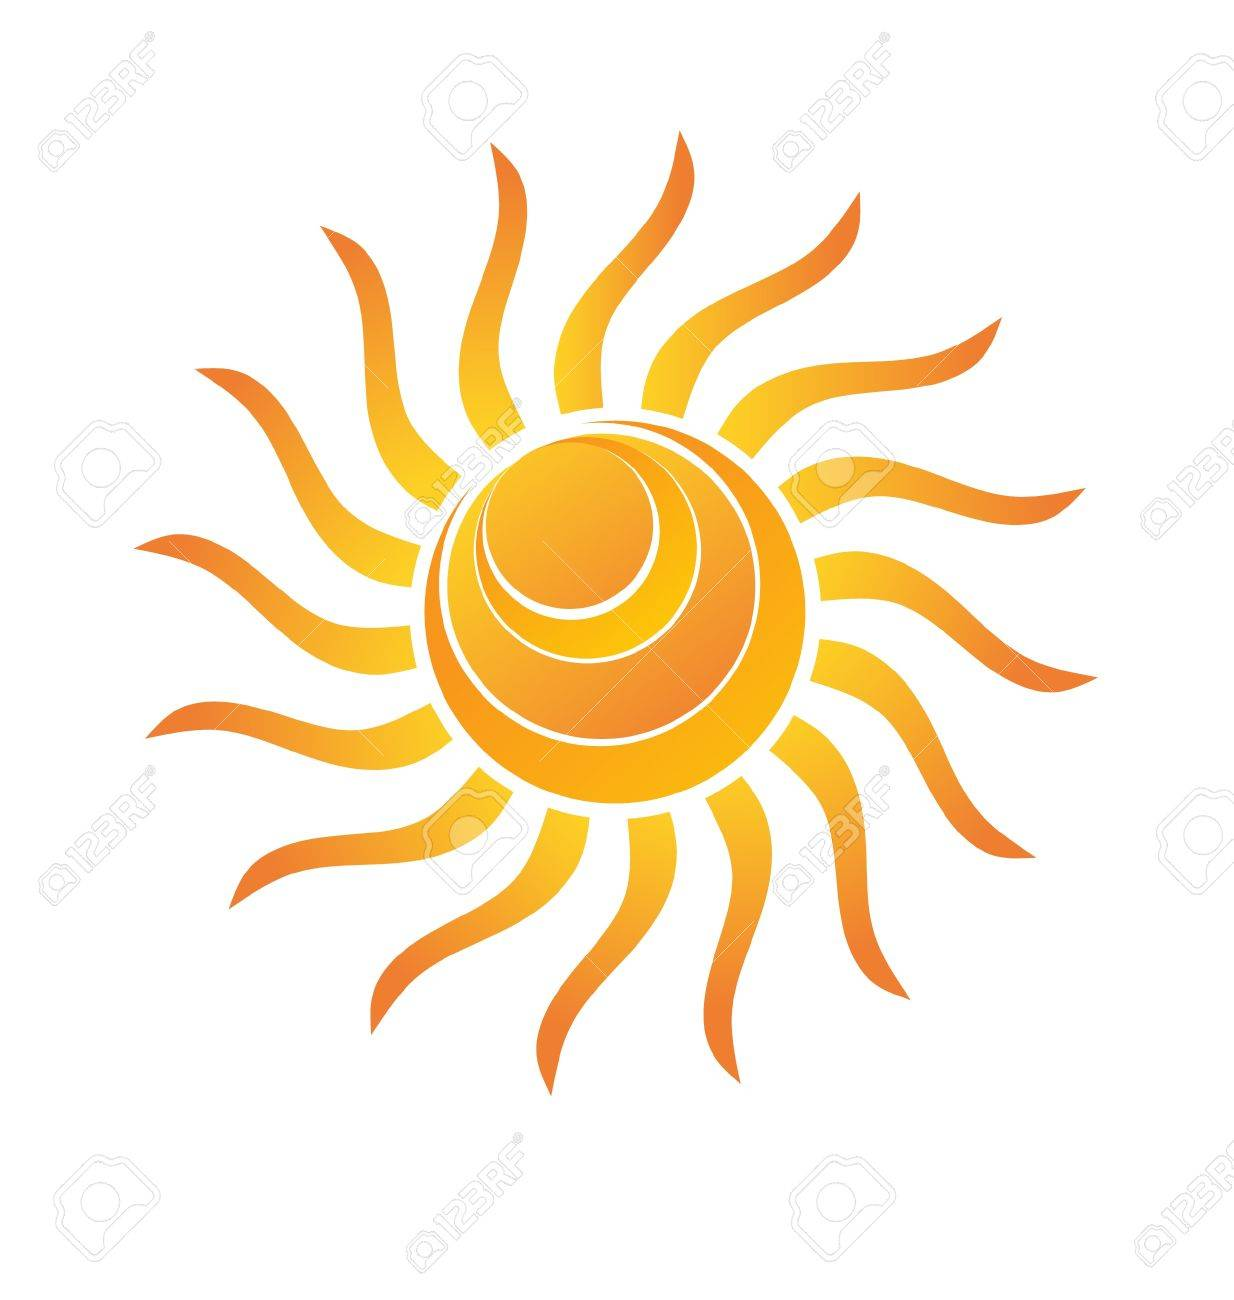 Yellow Shiny Sun with rays and circle waves Stock Vector - 13487320